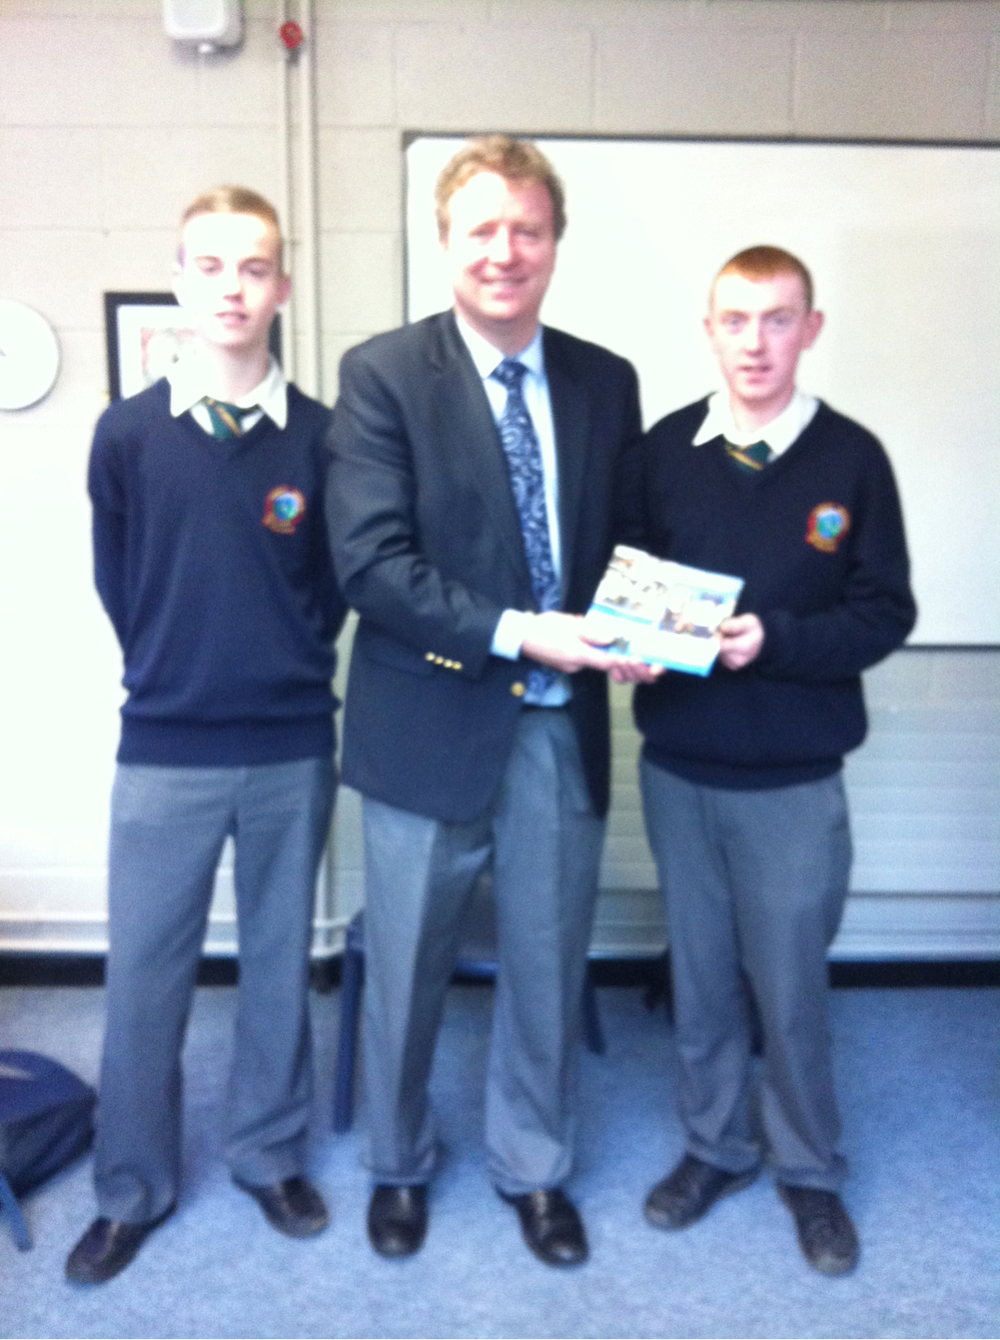 Denis Leonard from Dunboyne College of Further Education gave a presentation to sixth year students this morning.